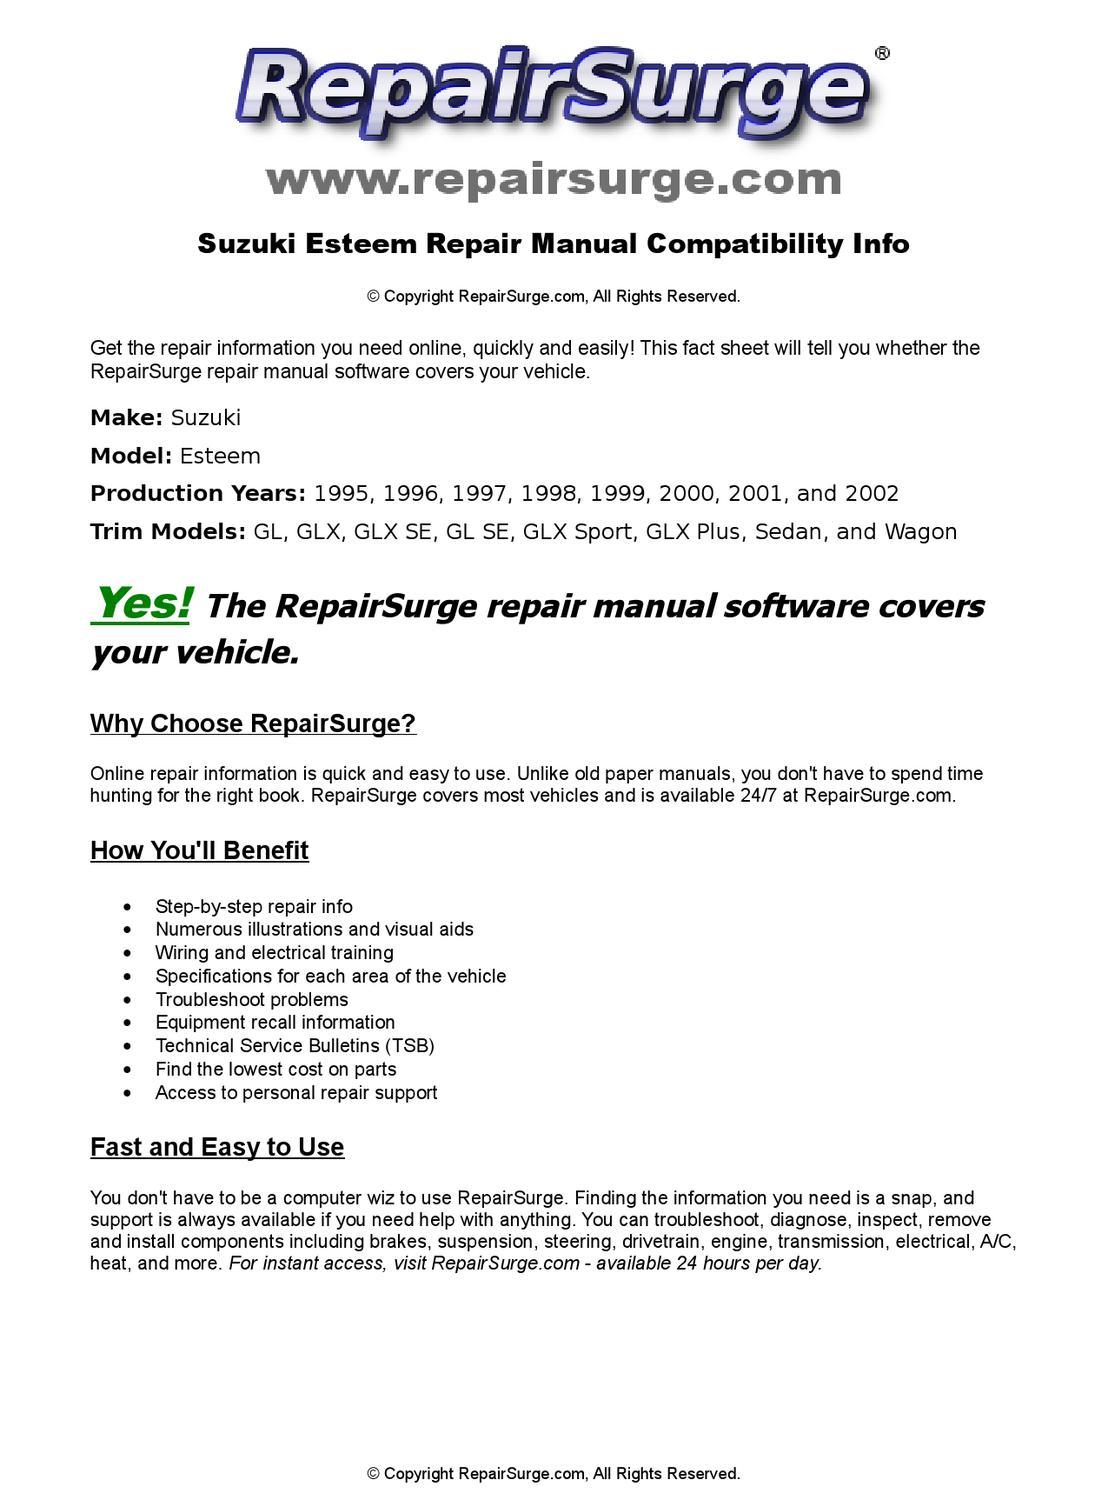 Suzuki Esteem Online Repair Manual For 1995, 1996, 1997, 1998, 1999, 2000,  2001, and 2002 by RepairSurge - issuu